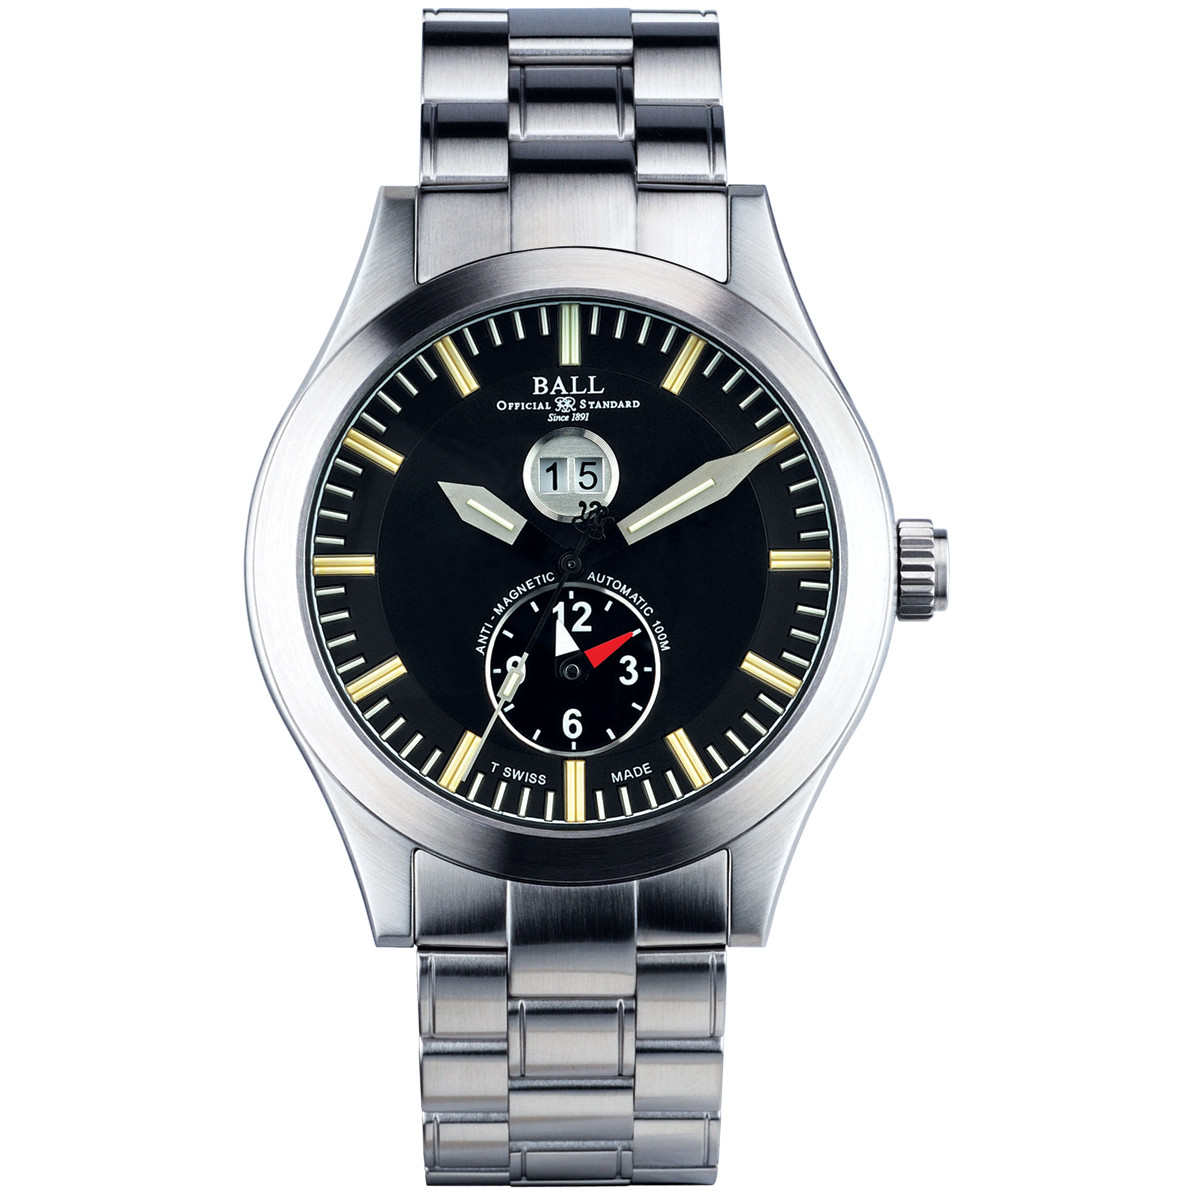 Preowned Ball Engineer Master II Aviator